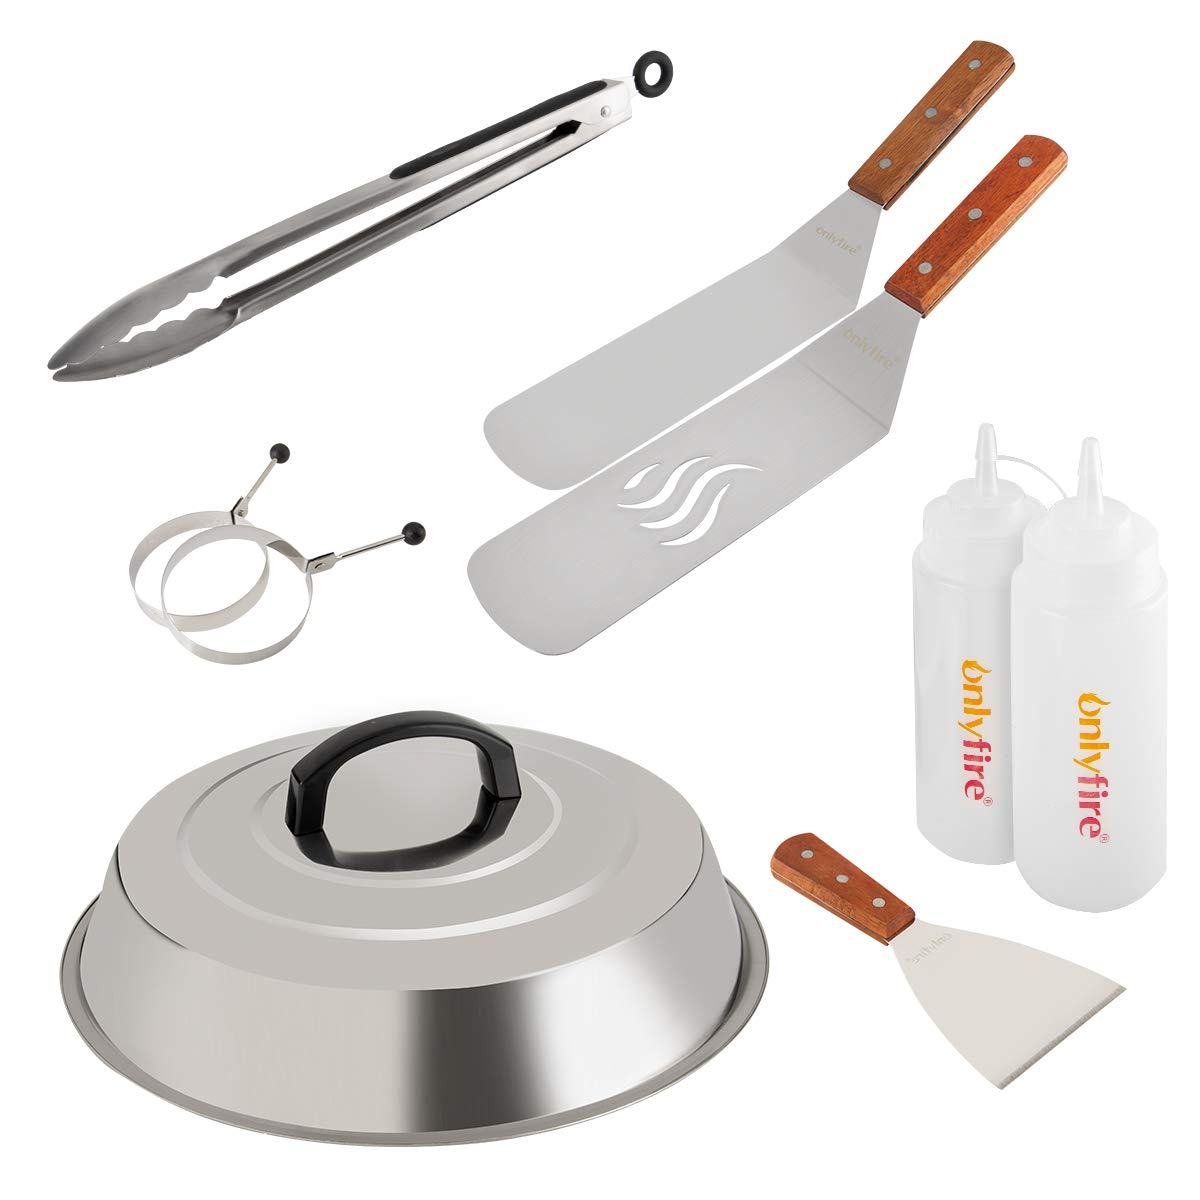 Onlyfire Professional BBQ Griddle Tool Kit Great for Grill Griddle Flat Top Cooking Camping, with One 12'' Melting Dome, 9 pcs by only fire